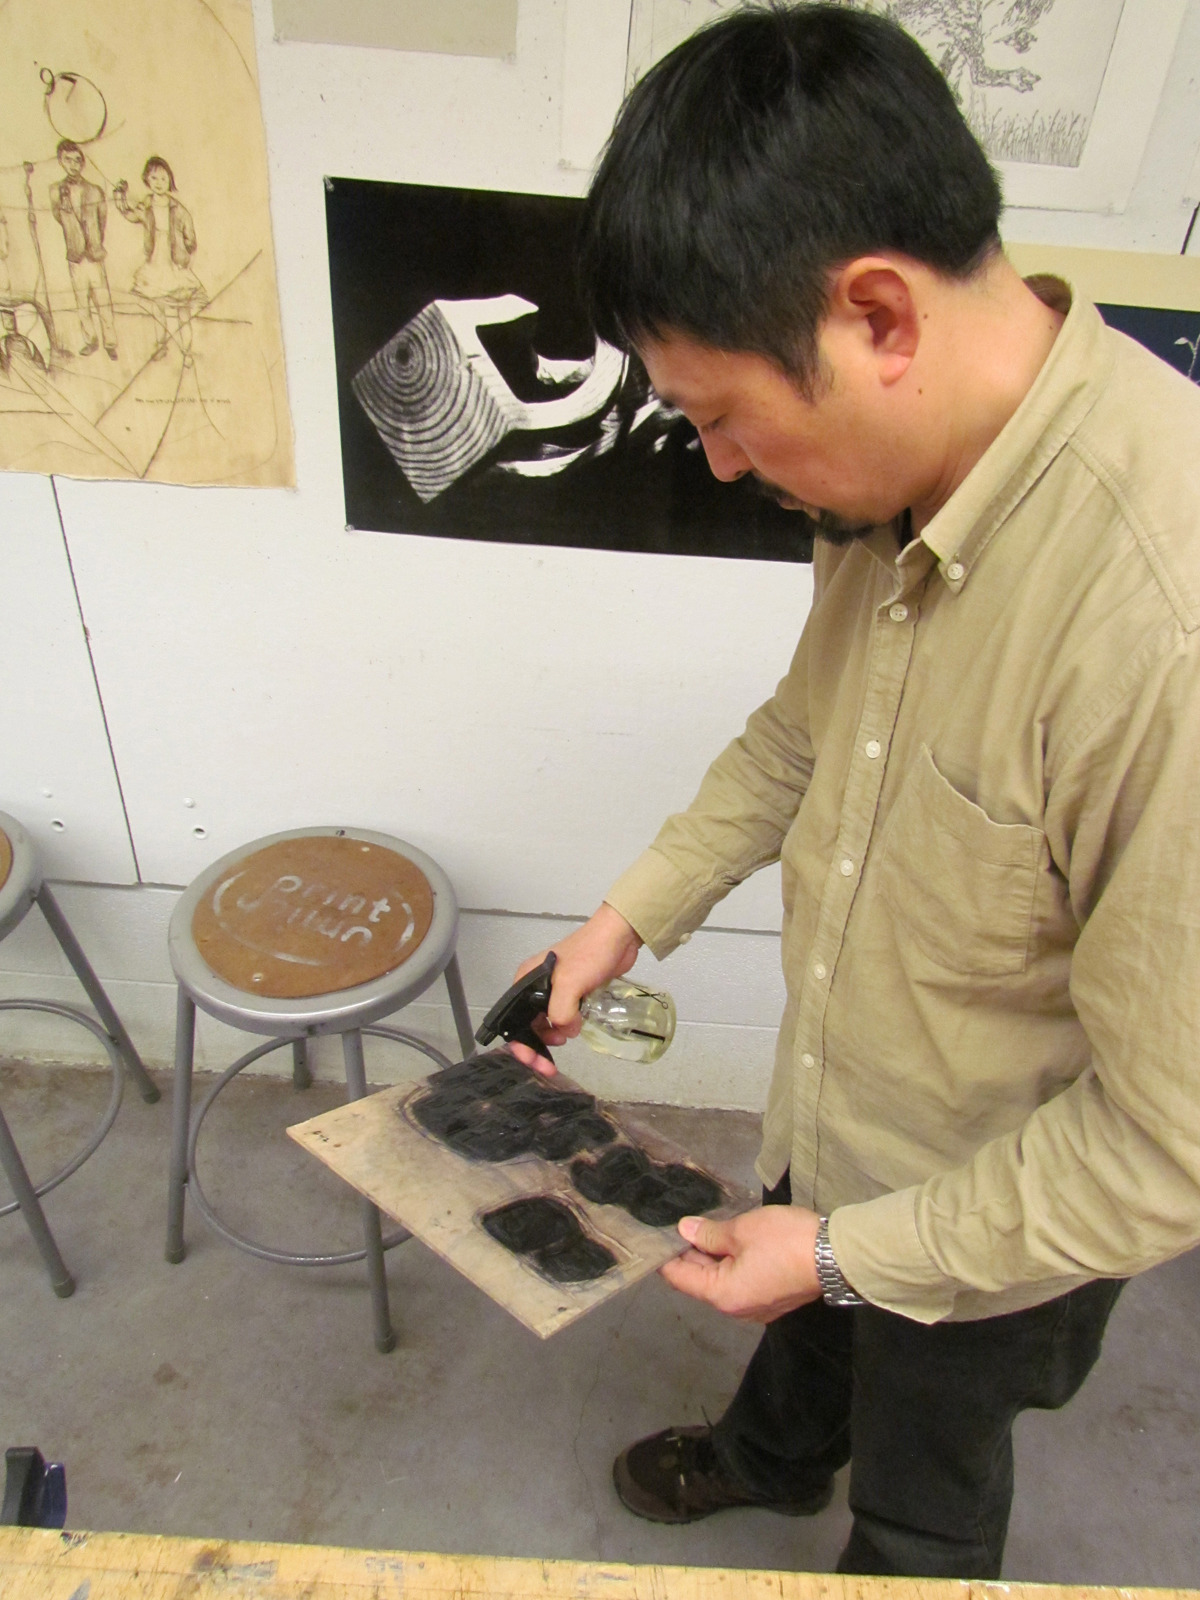 printstamps:  Artist Fang Limin Workshop with Witt Visiting Artist Fang Limin in water-based relief block printmaking at Stamps Print Studios. Using Fang's blocks, some 40+ prints were printed and each impression uniquely hand-colored by students, faculty and staff.